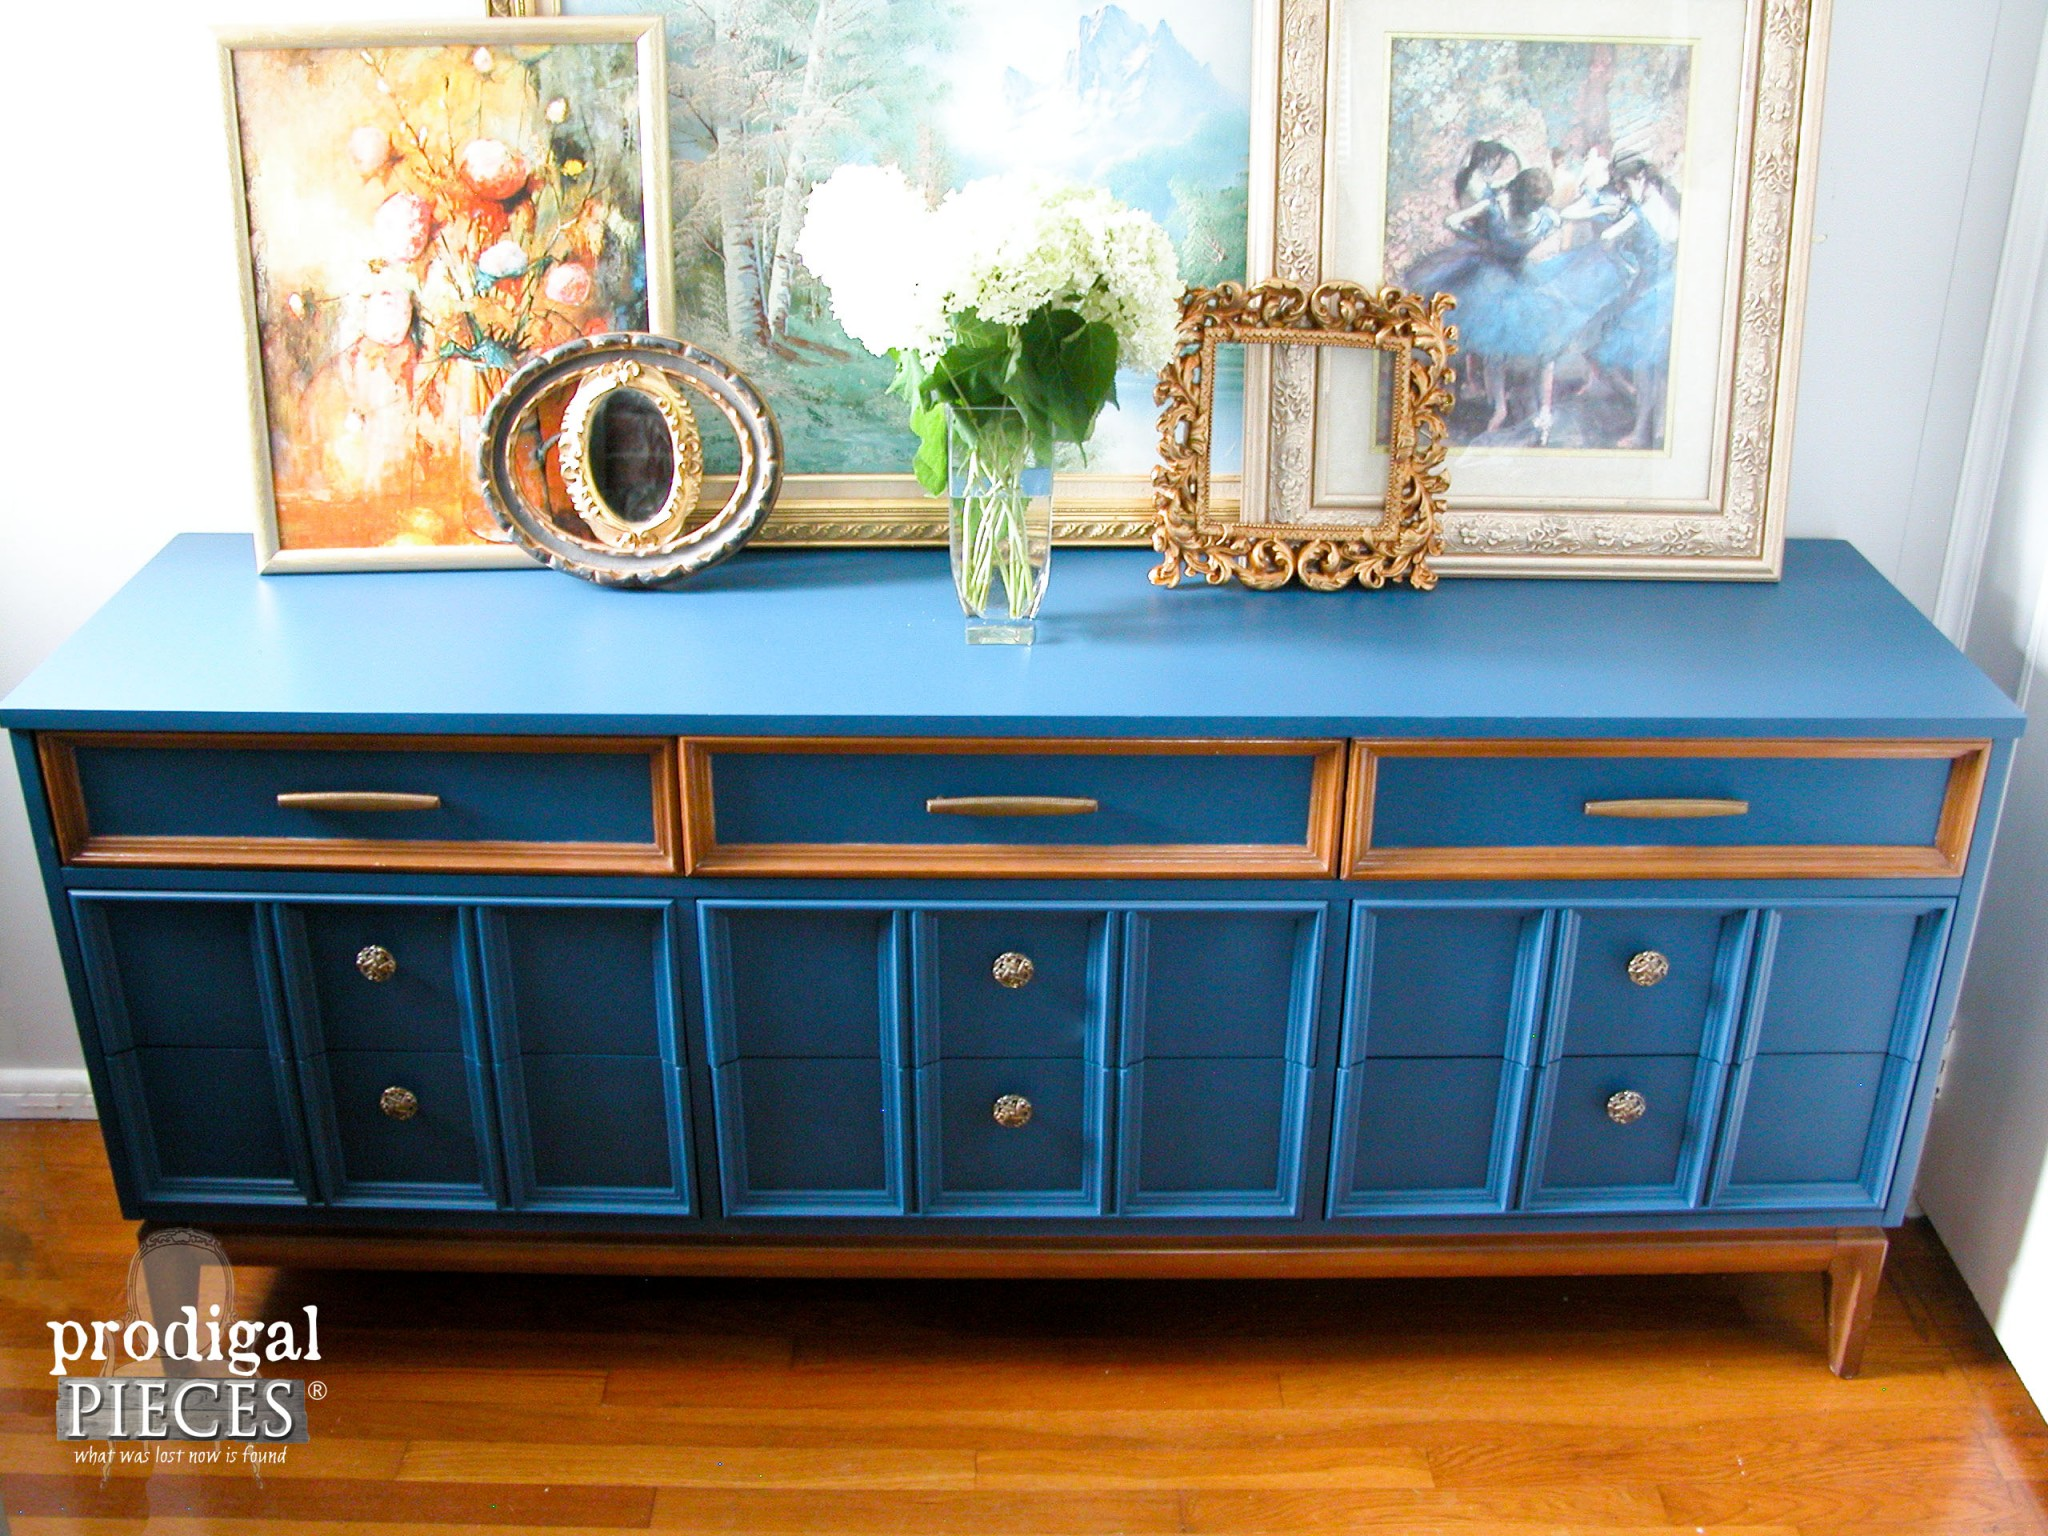 Top View of Factory Finish on Blue Dixie Credenza by Prodigal Pieces | www.prodigalpieces.com